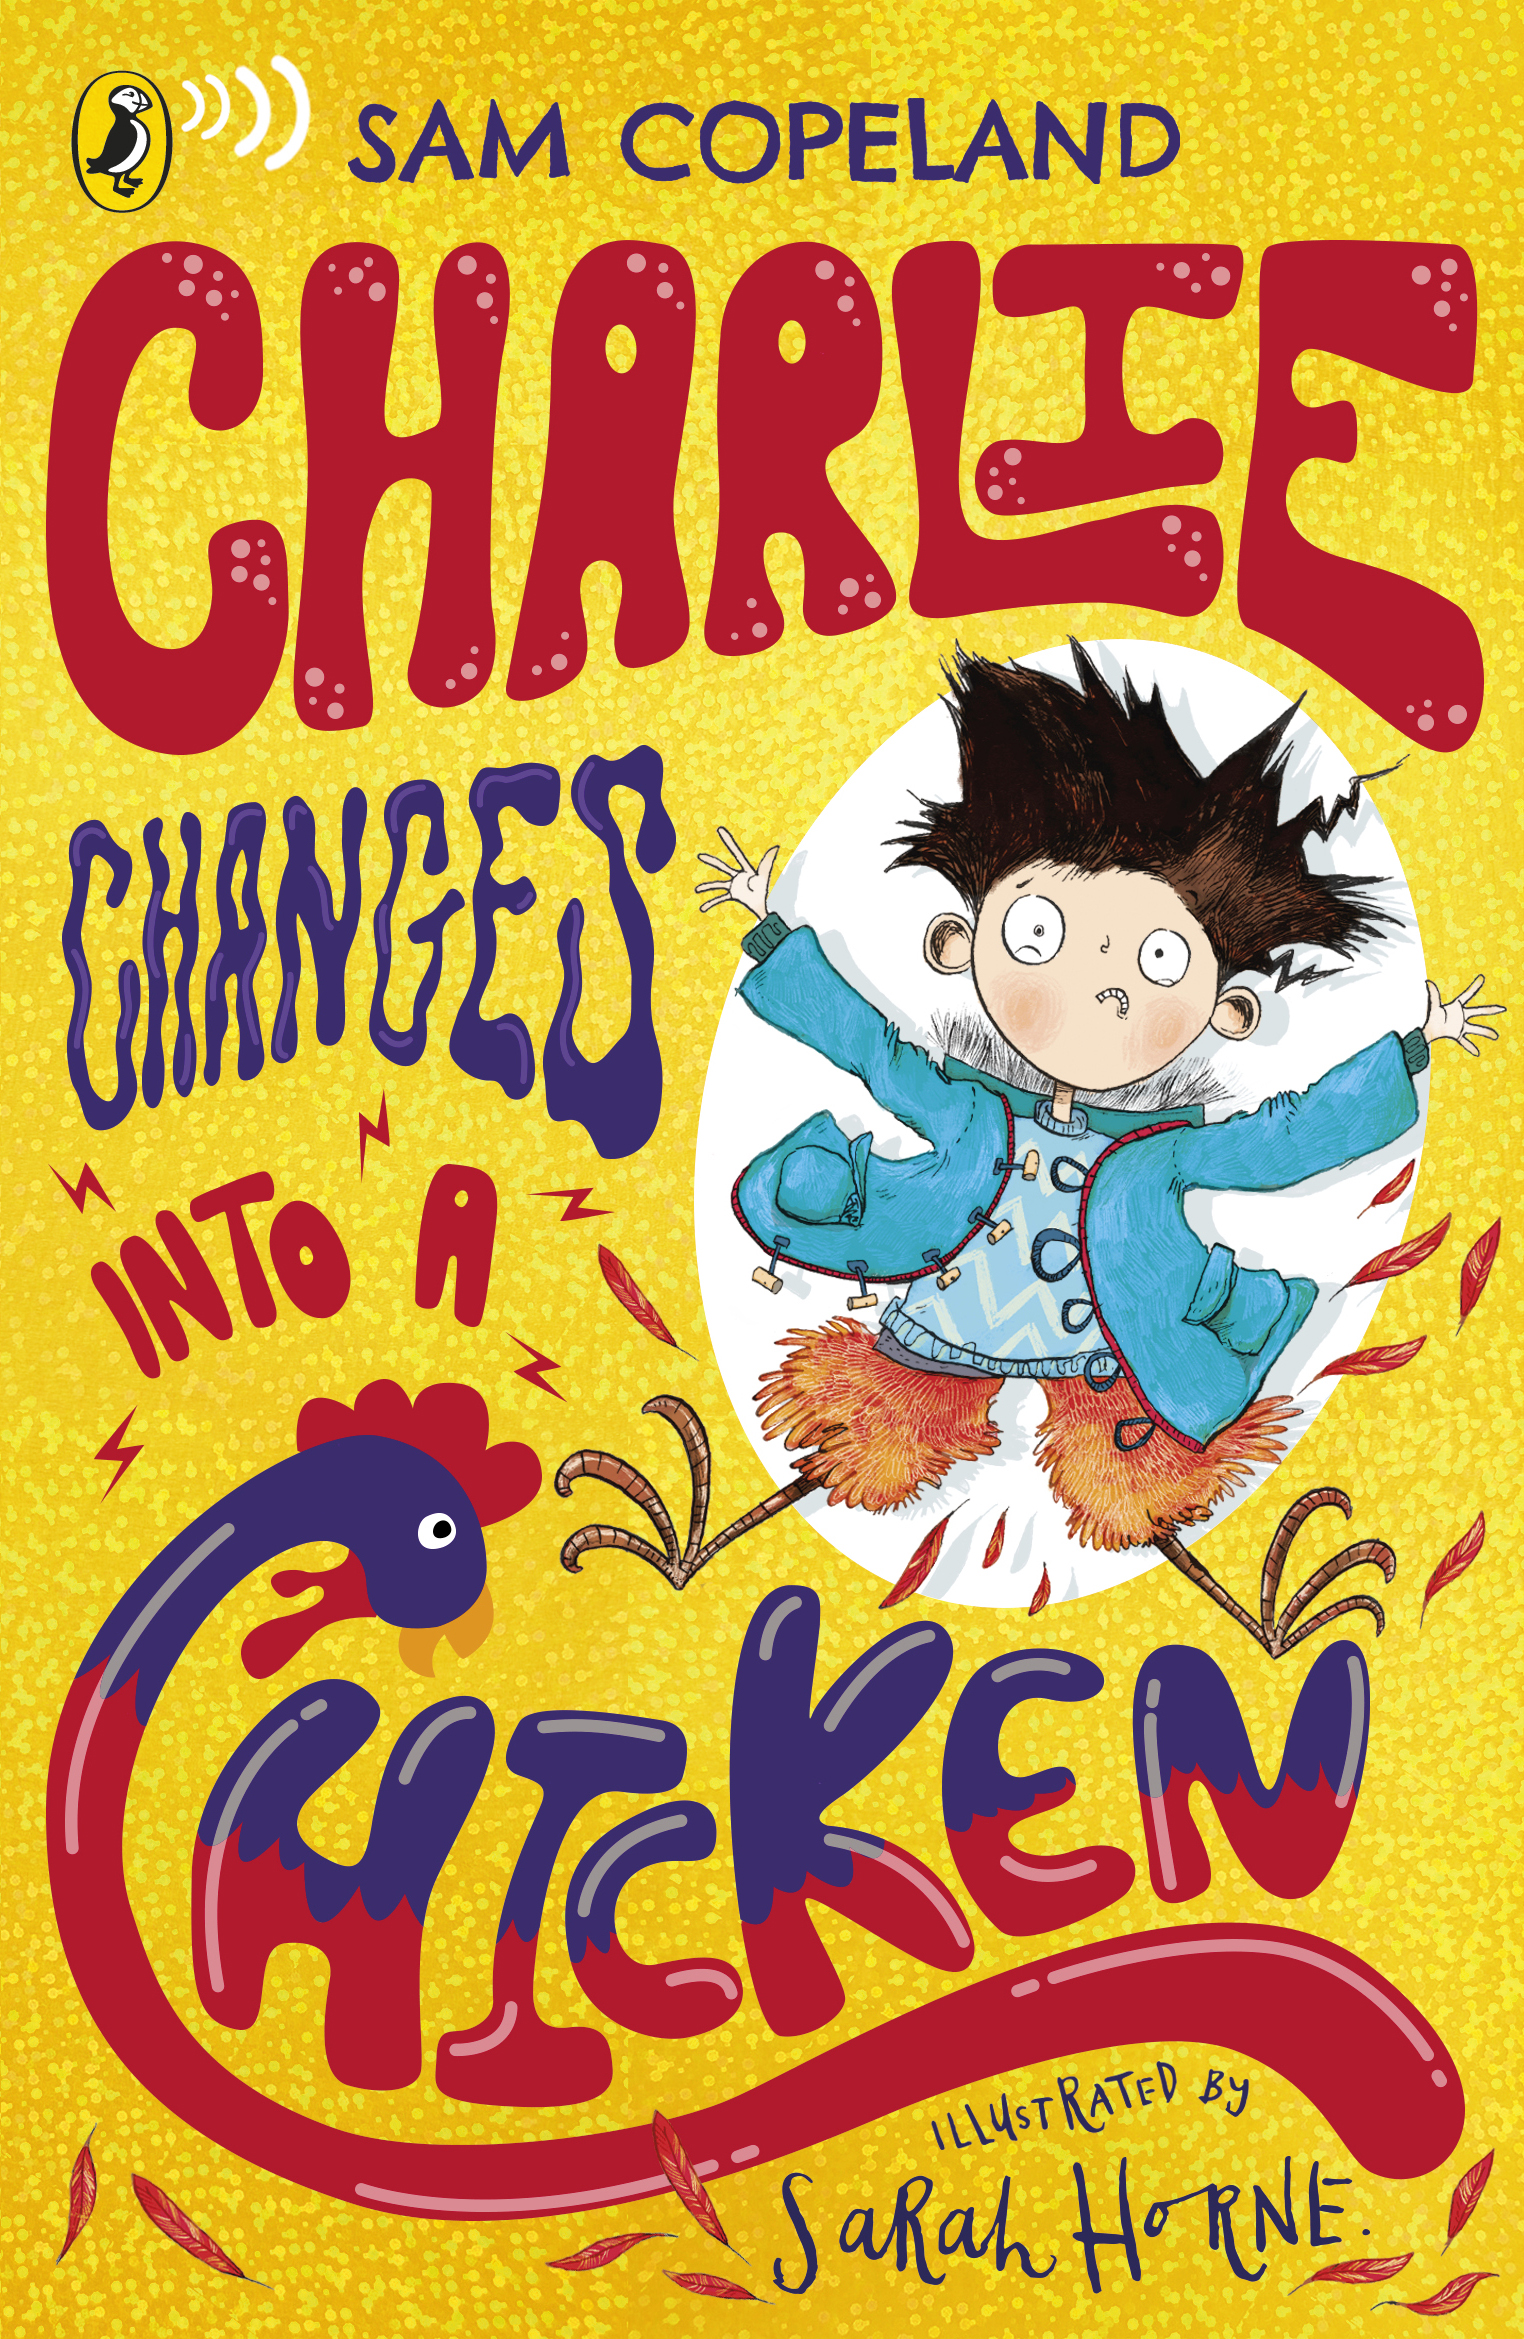 - The bestselling CHARLIE CHANGES INTO A CHICKEN is out NOW from Puffin (Penguin Random House, and in 22 other countries!).So what's it about then?Charlie McGuffin tries to be an optimist, but in reality he's a bit of a worrier.Some of the things Charlie is worried about:· His brother (who is in hospital)· Their very panicked parents· Unwanted attention from the school bully· The fact that he's started turning into animals!Even though every kid wants a superhero power, Charlie isn't keen on turning into a pigeon in the middle of the school play.But what happens if he does? Will he get sent away for Science to deal with? Will his parents crack under the extra stress?With the help of his three best friends, Charlie needs to find a way of dealing with his crazy new power - and fast!Sounds great, huh? Well why not click on these links to buy it*:Buy the book on AMAZONBuy the book from WATERSTONESBuy the book from YOUR LOCAL INDEPENDENT BOOKSHOPBuy the book from W.H. SMITH*There's no reason why not. Unless your mouse has just broken. In that very particular unfortunate set of circumstances, go to your nearest mouse-purveyor and buy a mouse, and when you get back then click and buy it. You really have no excuse.